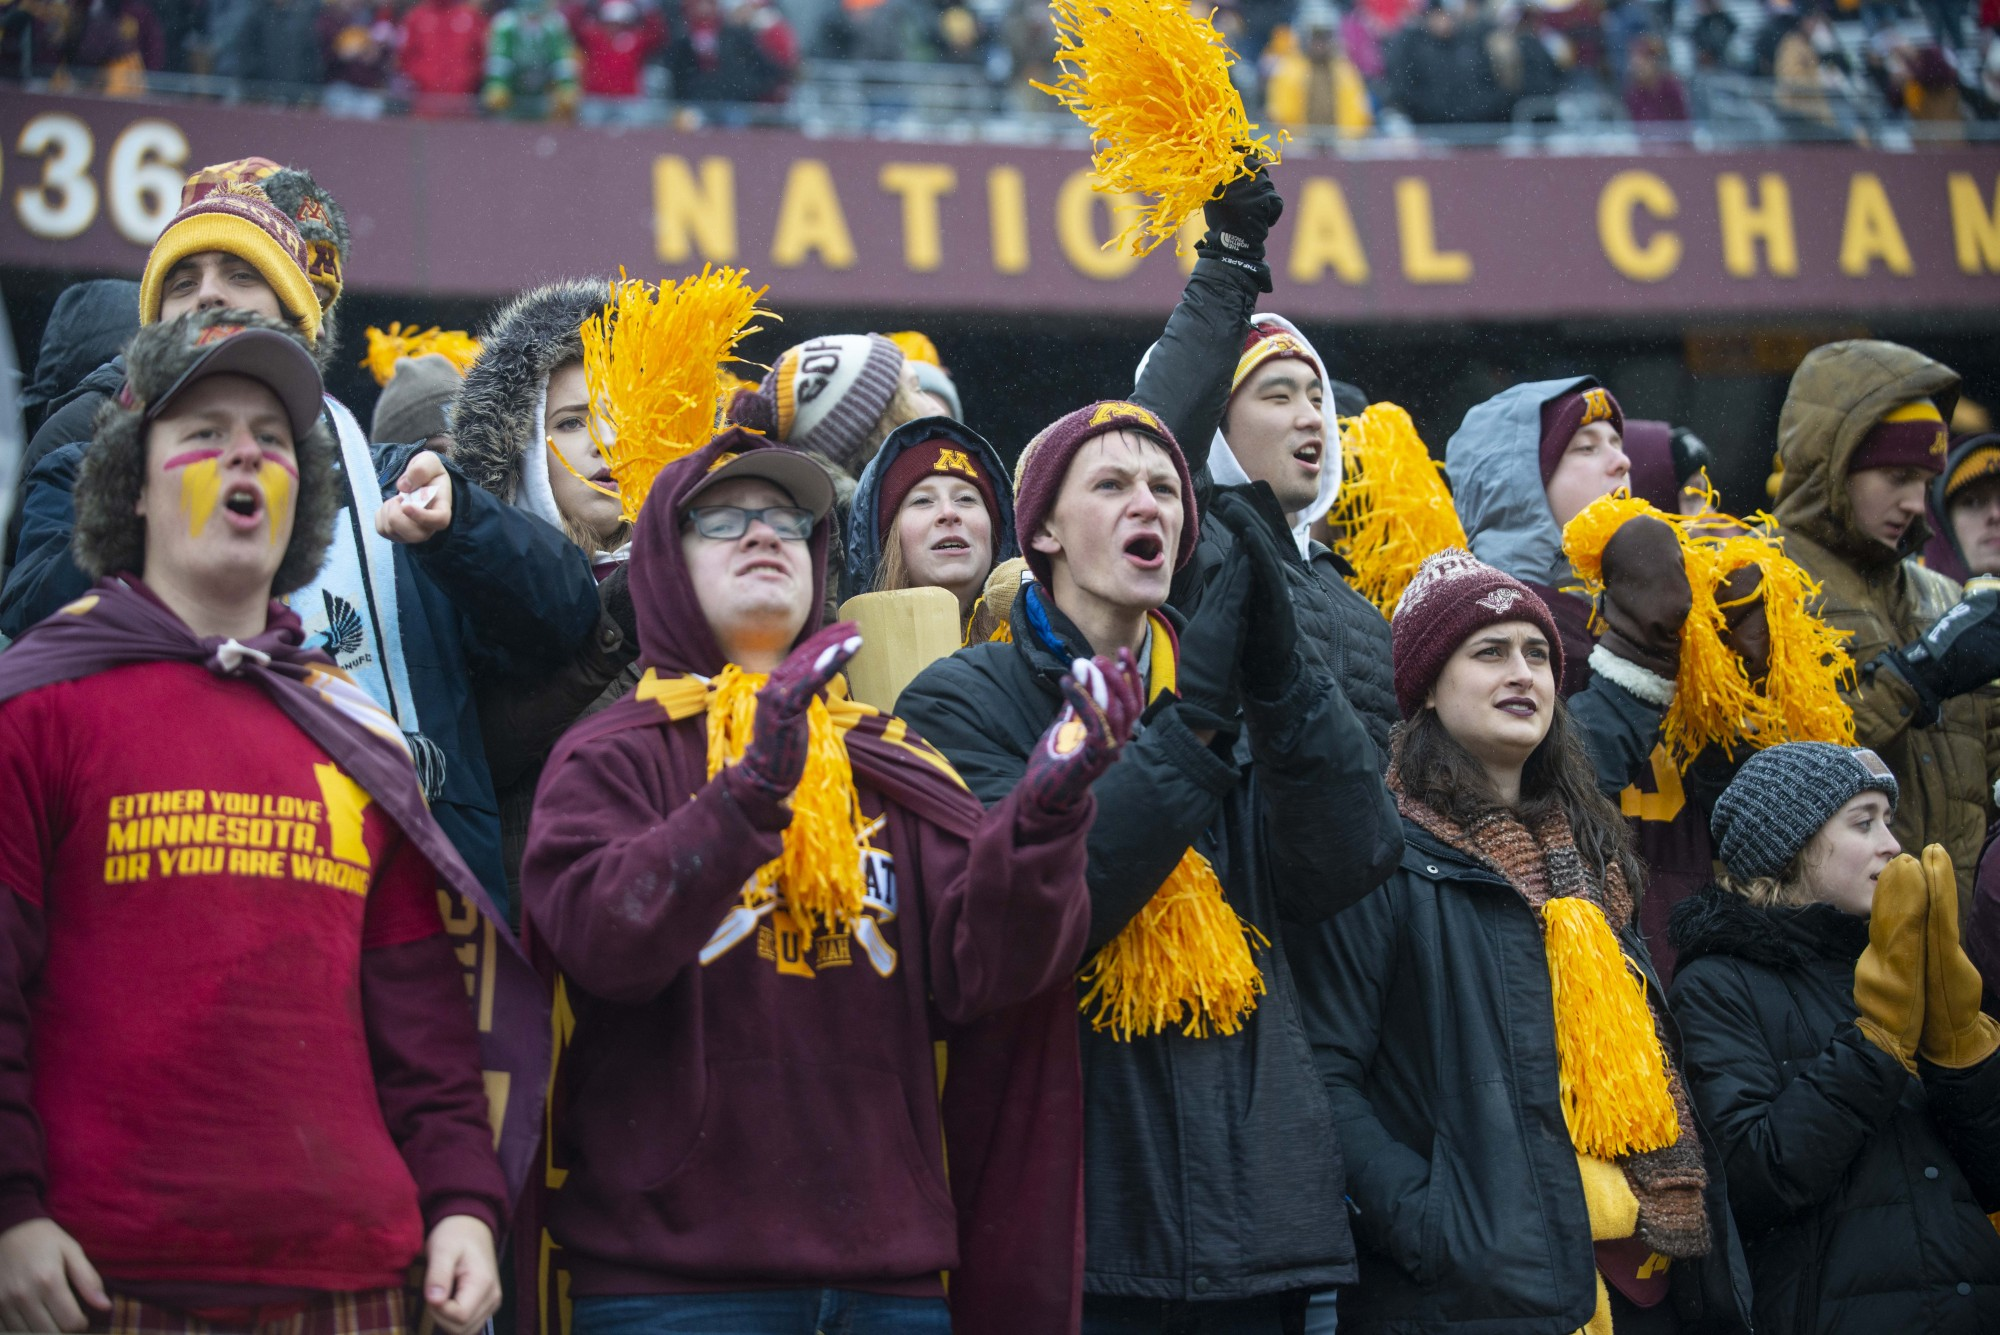 Fans cheer during the Gopher game against the Badgers at TCF Bank Stadium on Saturday, Nov. 30.